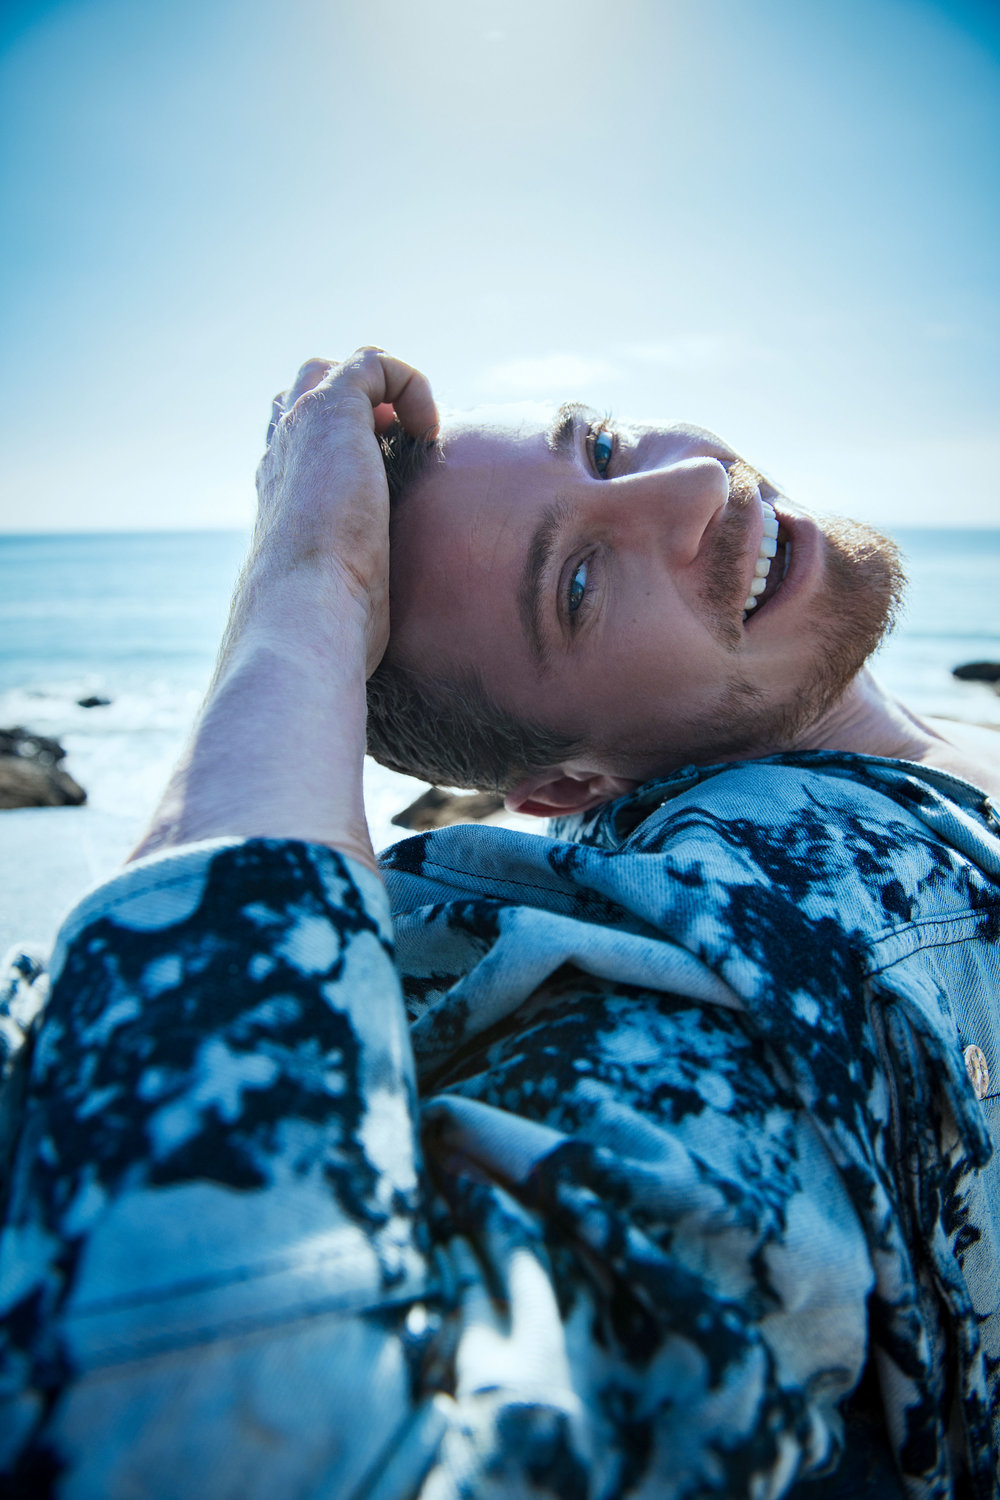 Garrett Hedlund covers Flaunt Magazine Issue 164 by Ian Morrison